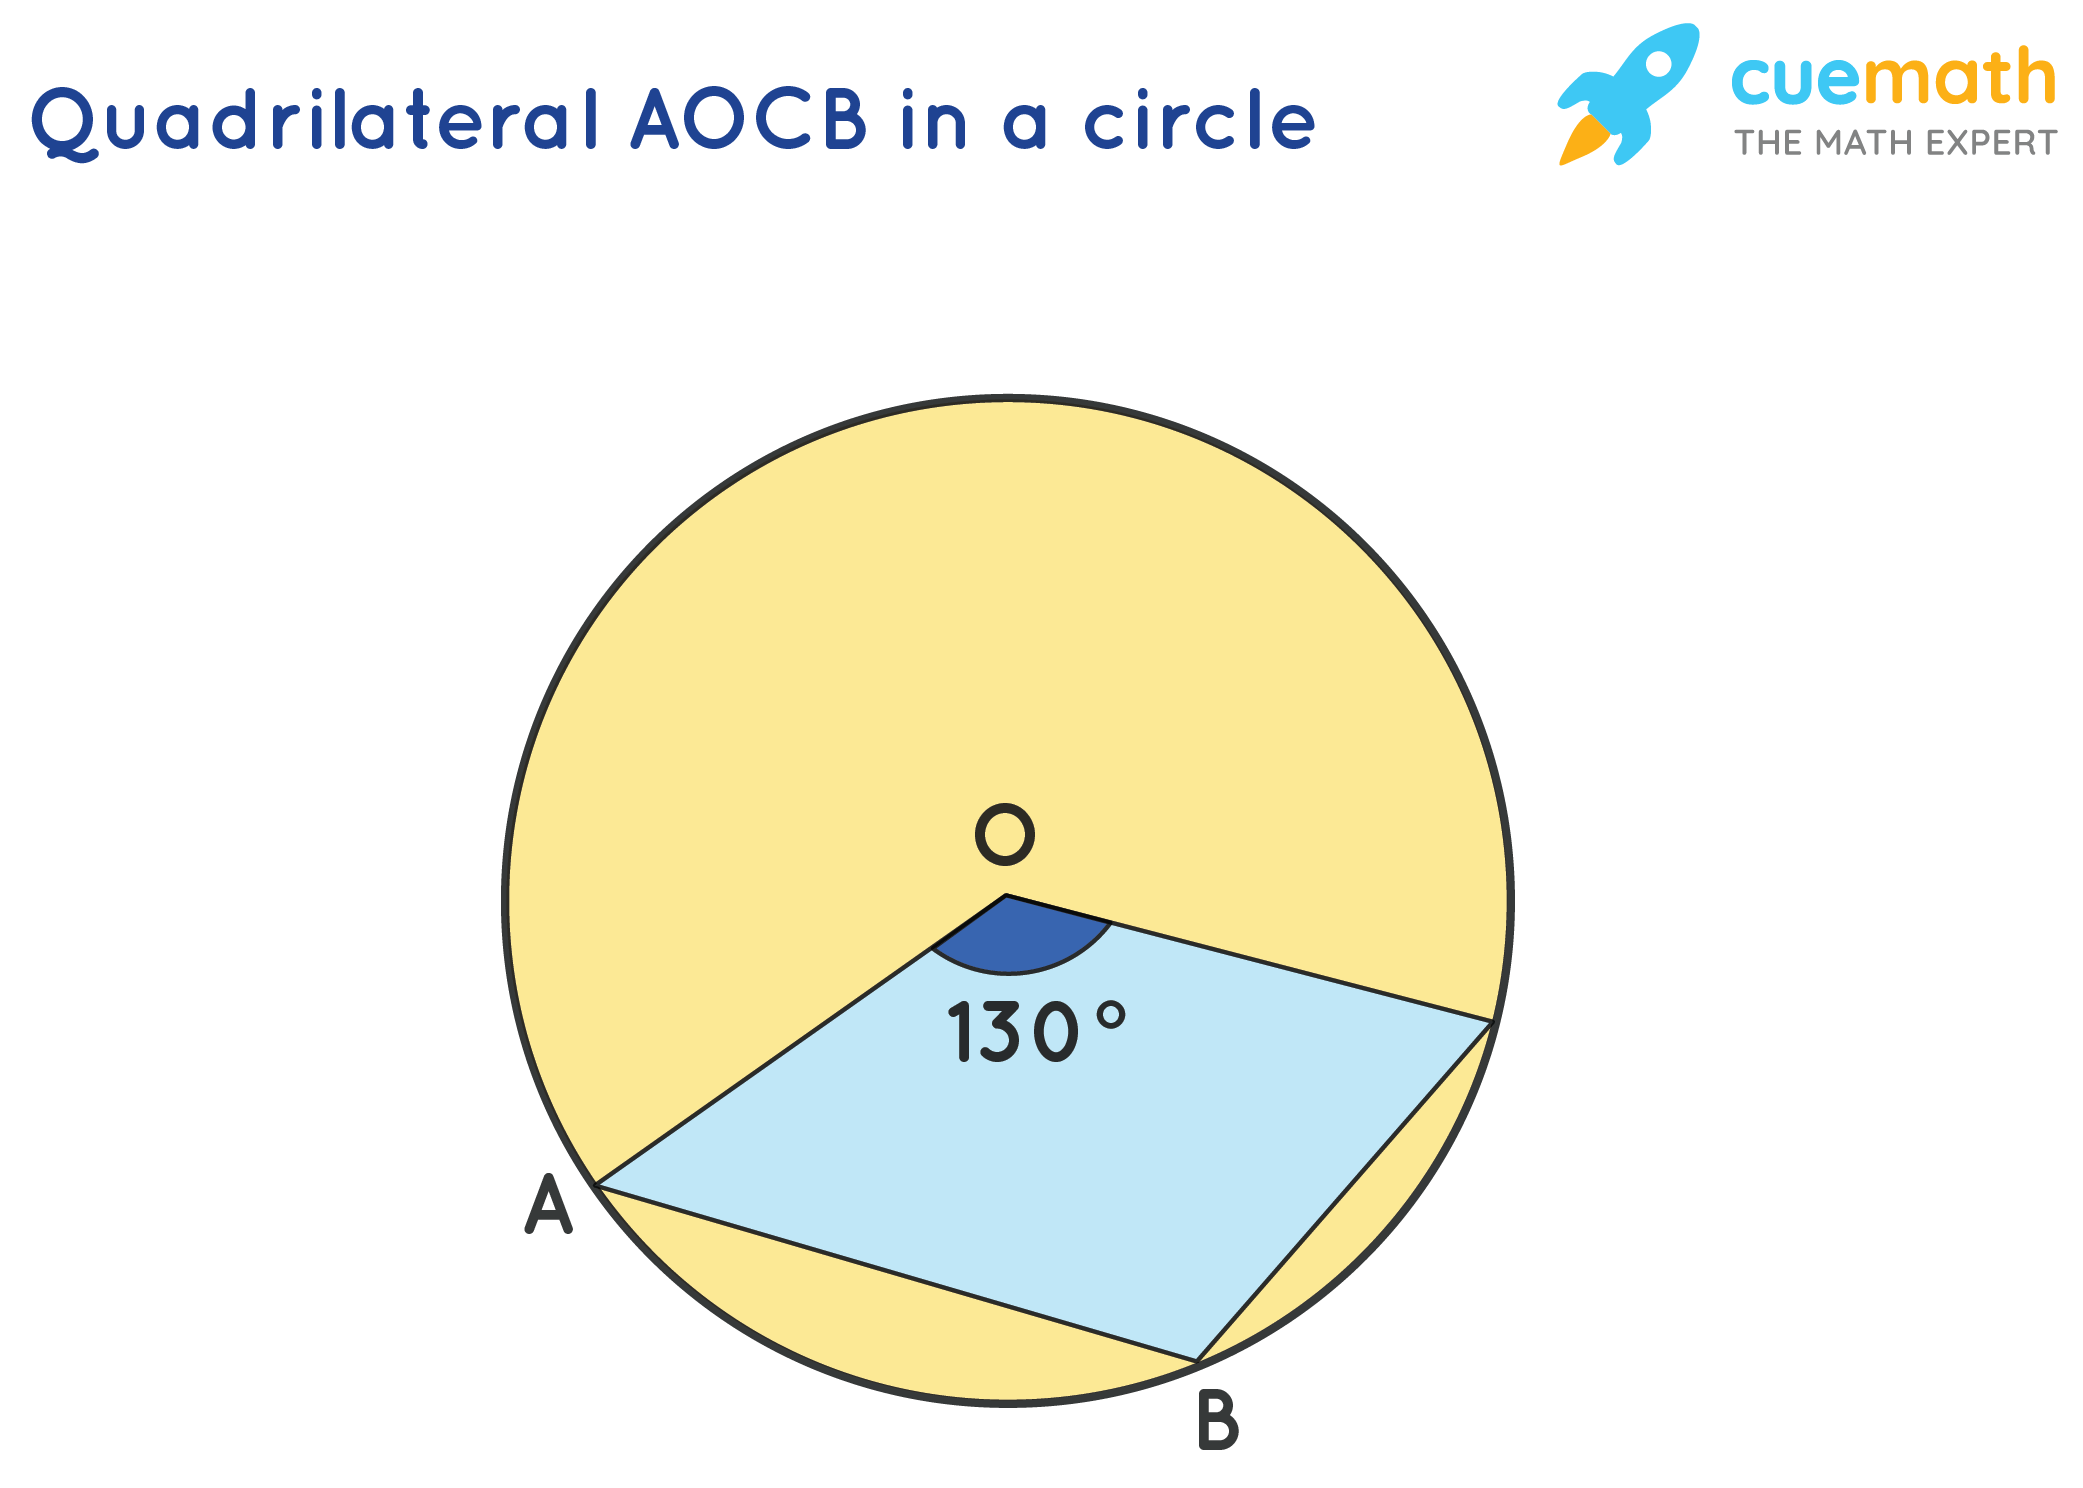 AOCB is a quadrilateral in circle with centre O, angle AOC = 130